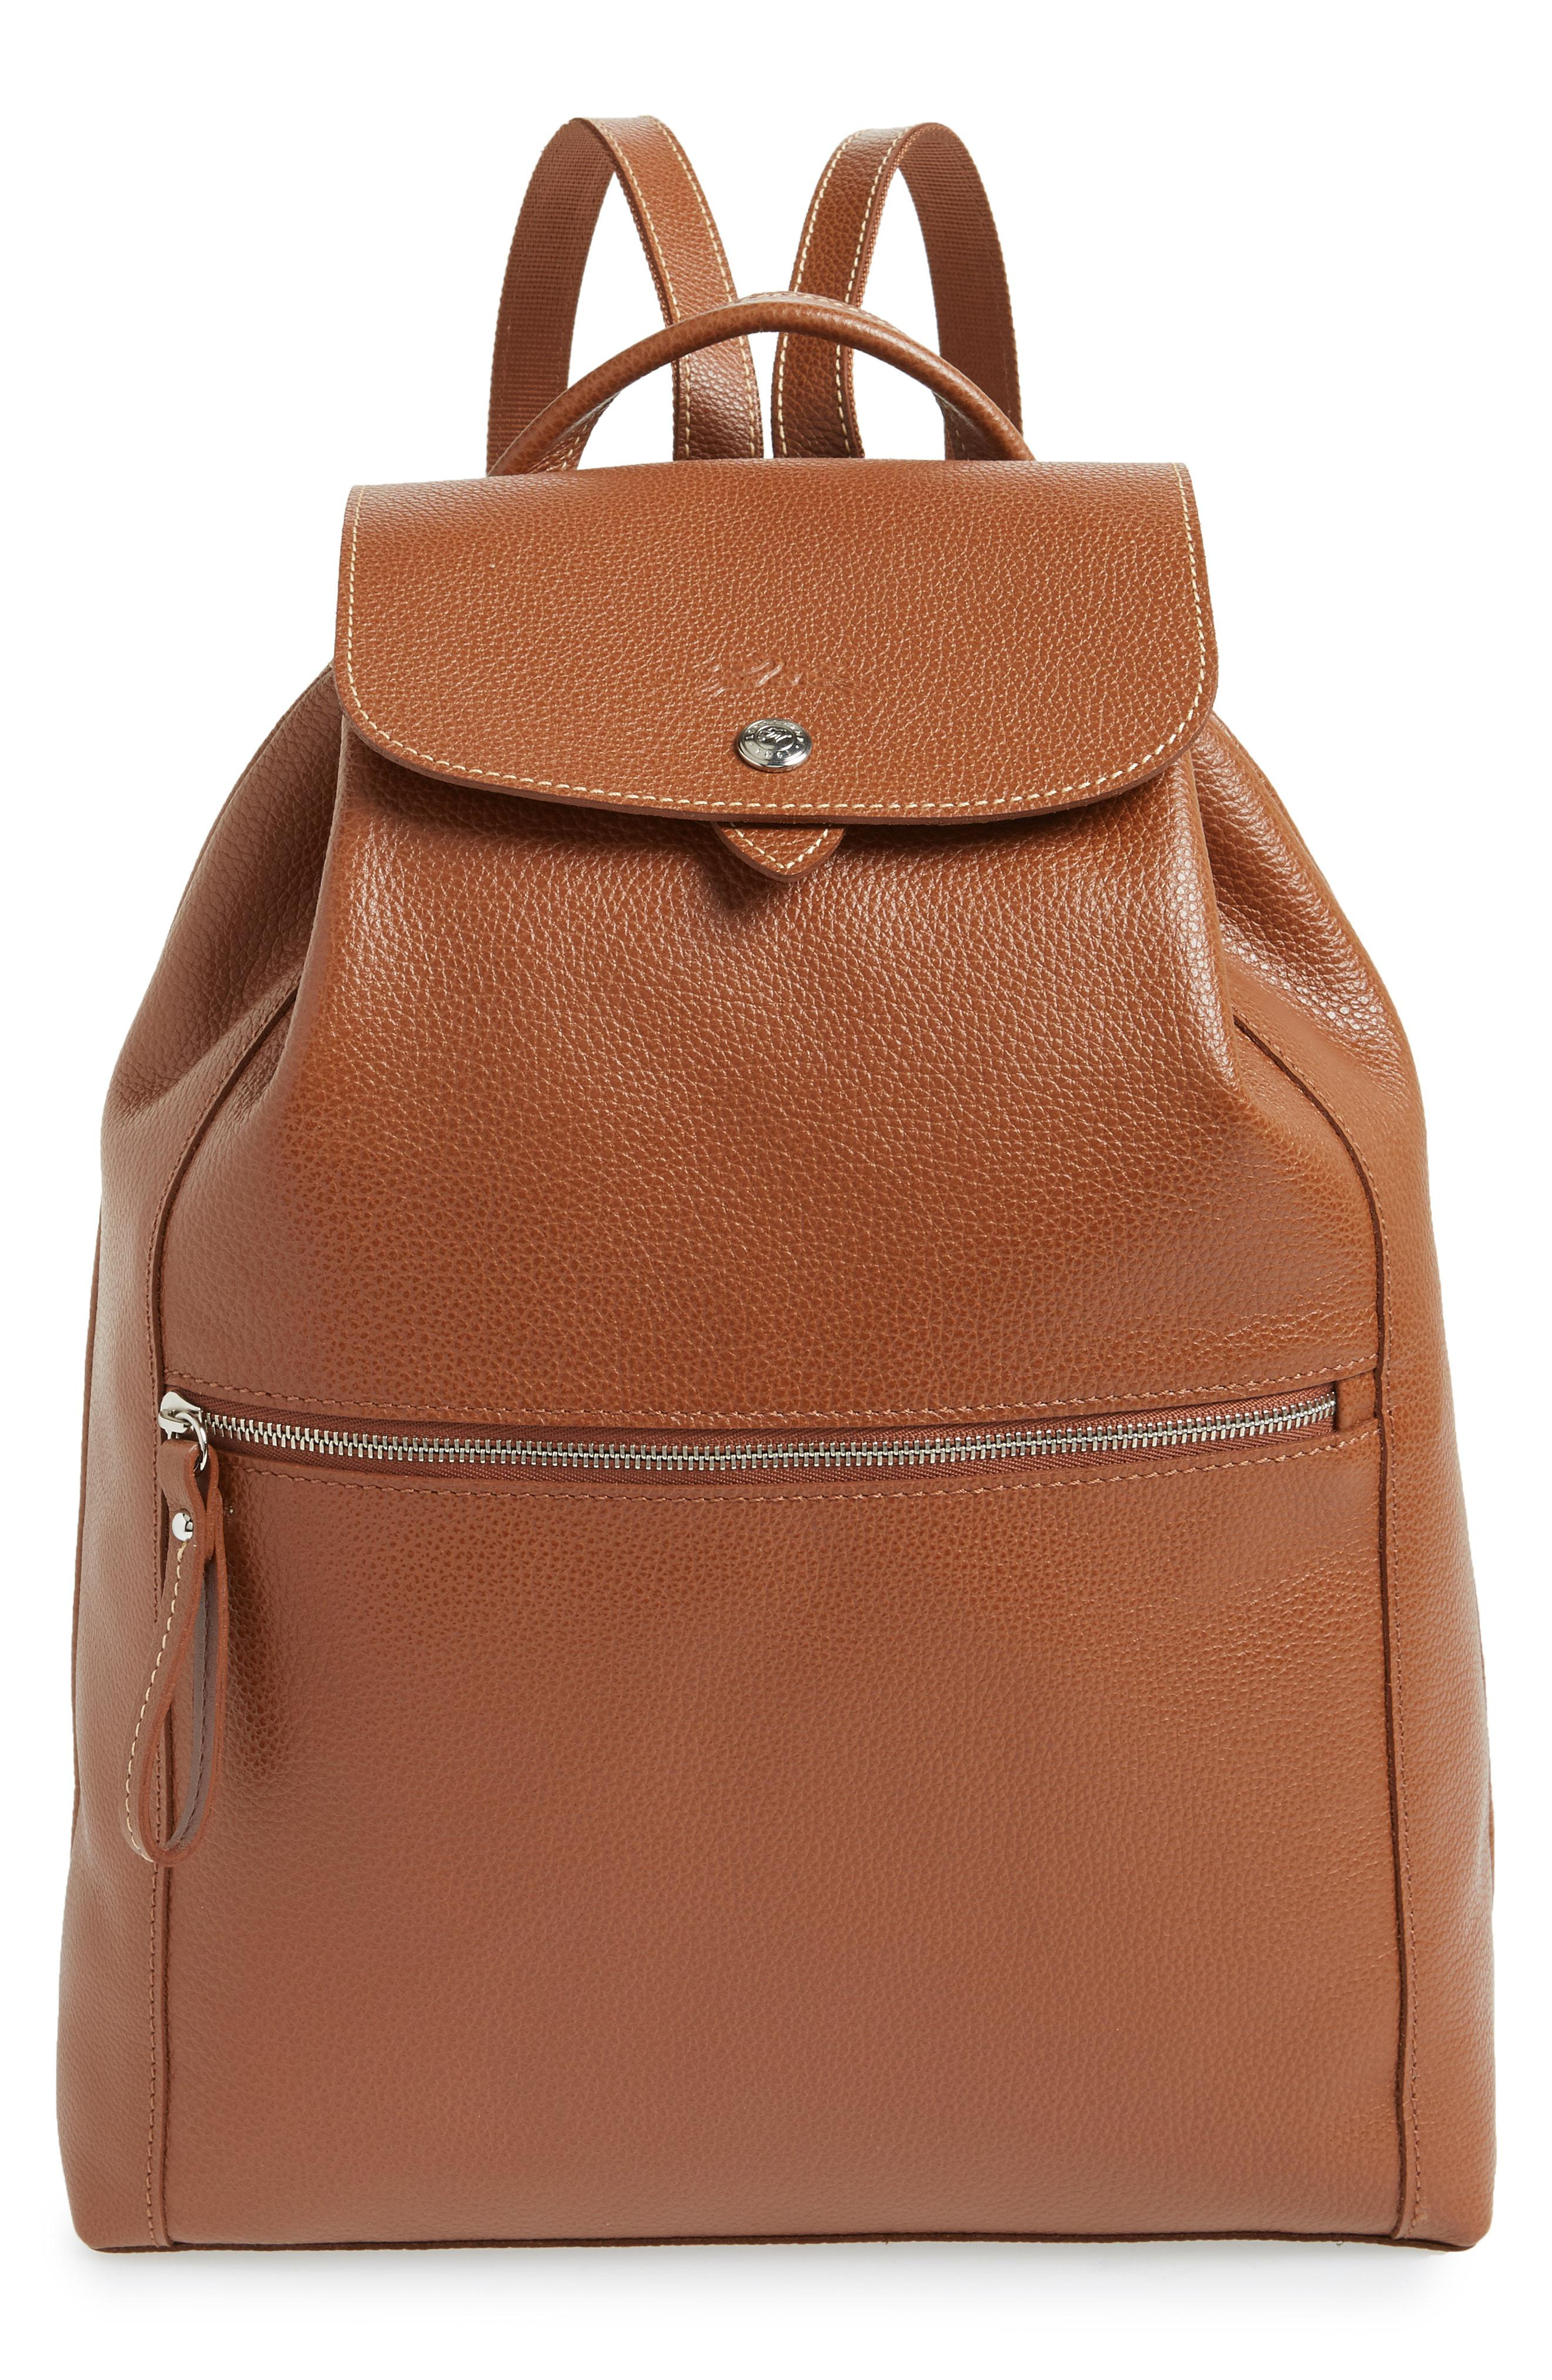 774d52659c3d Lyst - Longchamp Veau Leather Backpack in Brown